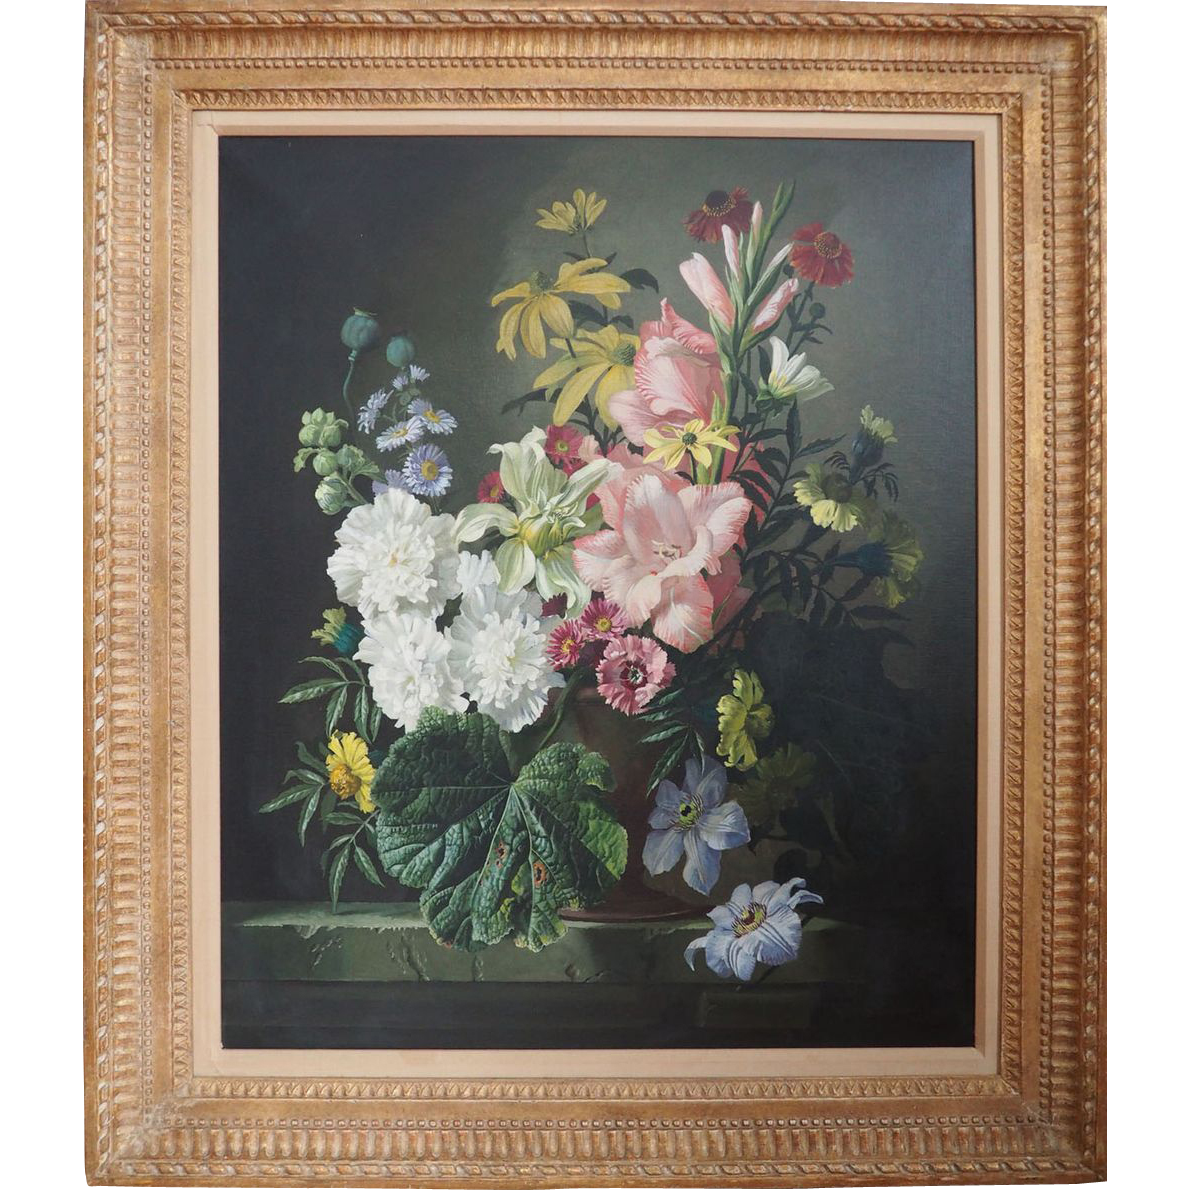 Flowers Floral Still Life Original Vintage Oil Painting By